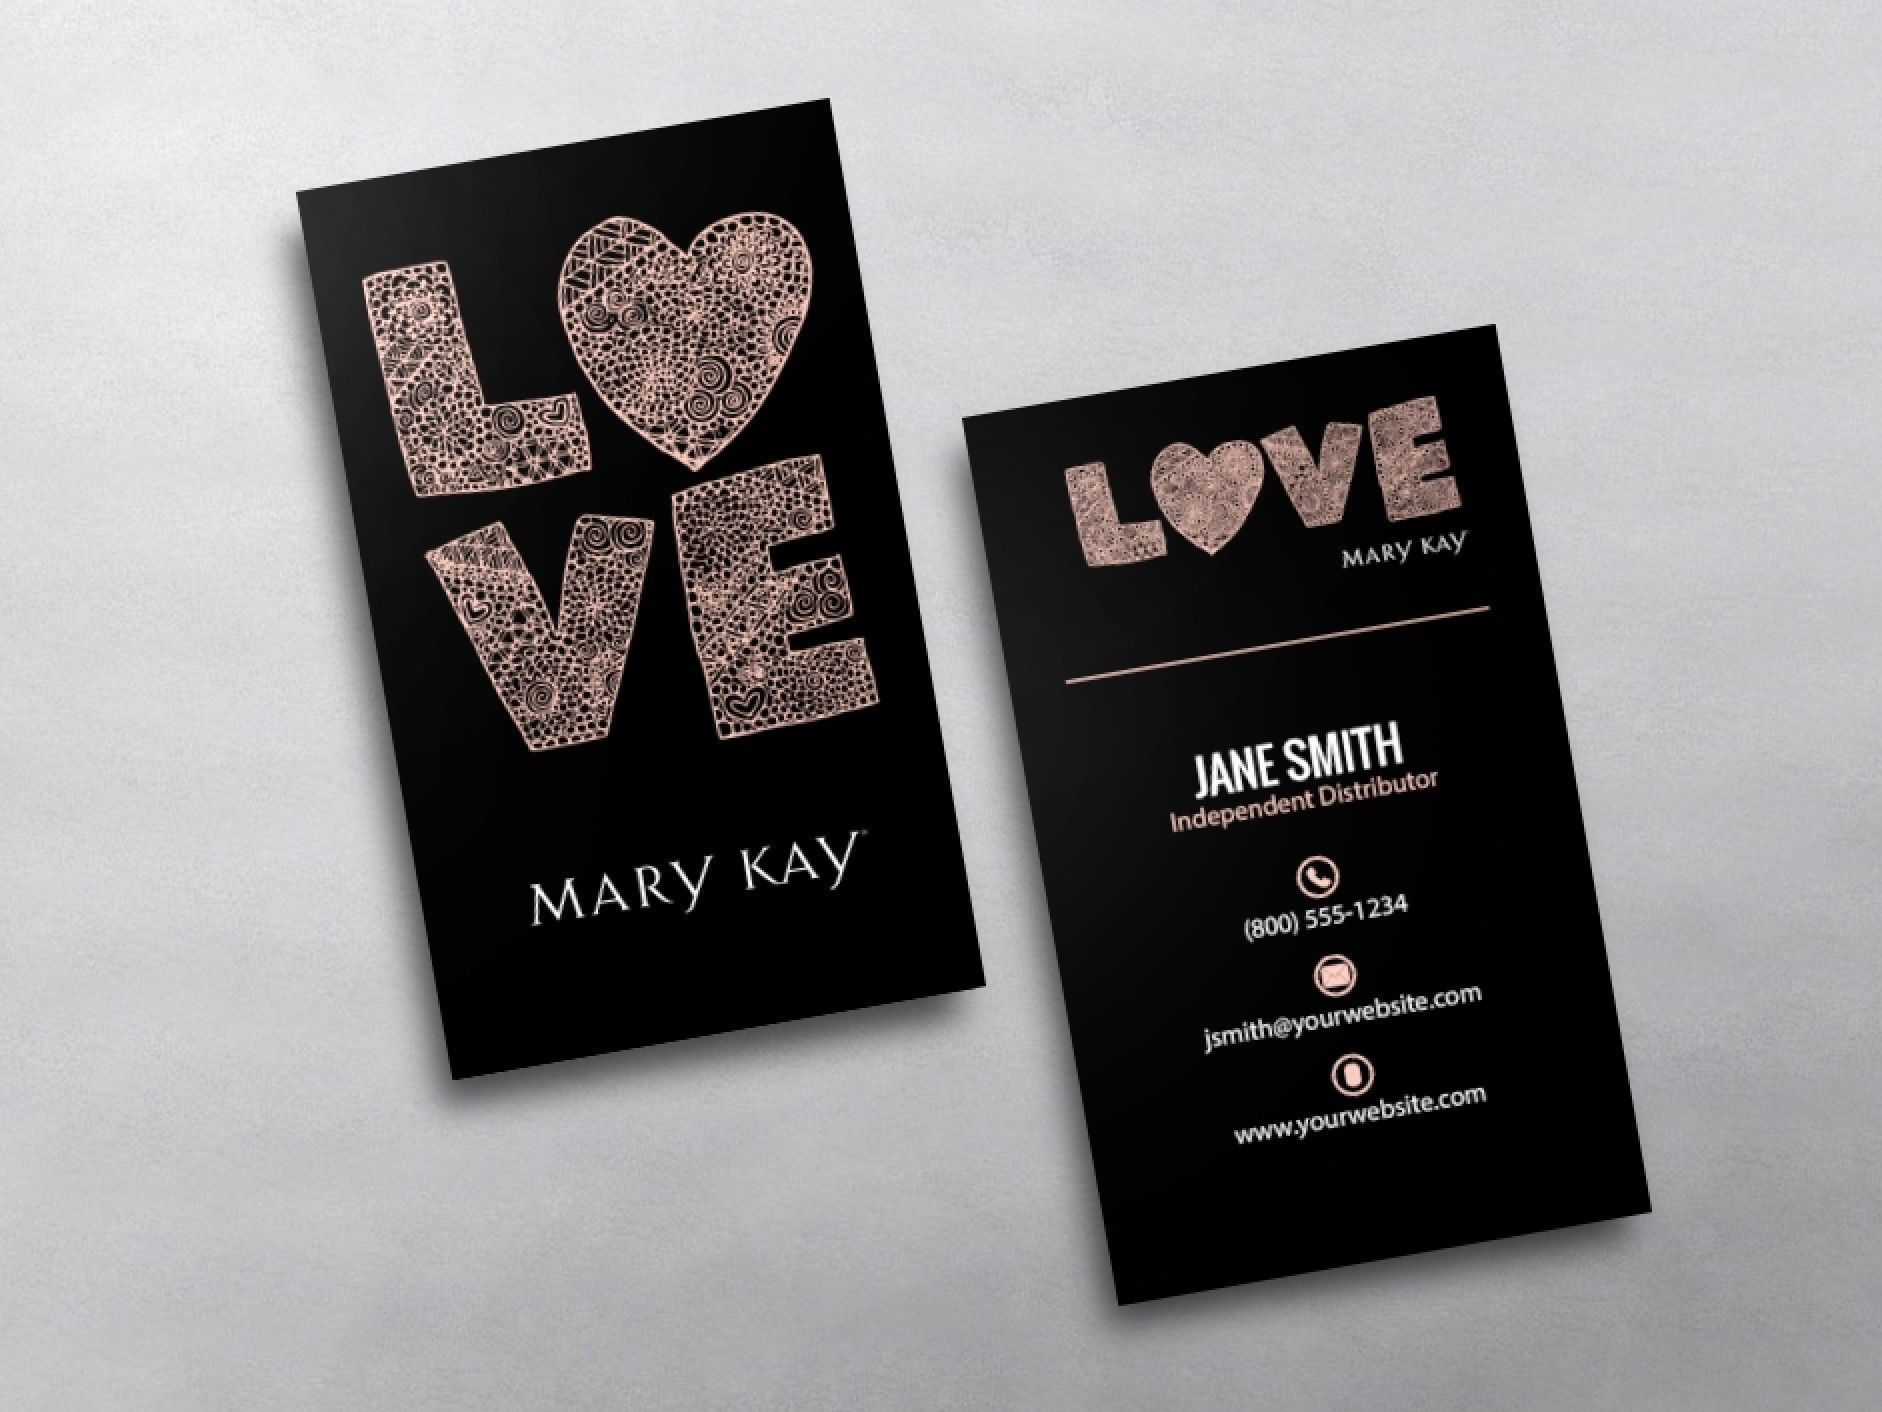 Mary Kay Business Cards | Pinterest | Beauty consultant and Mary kay